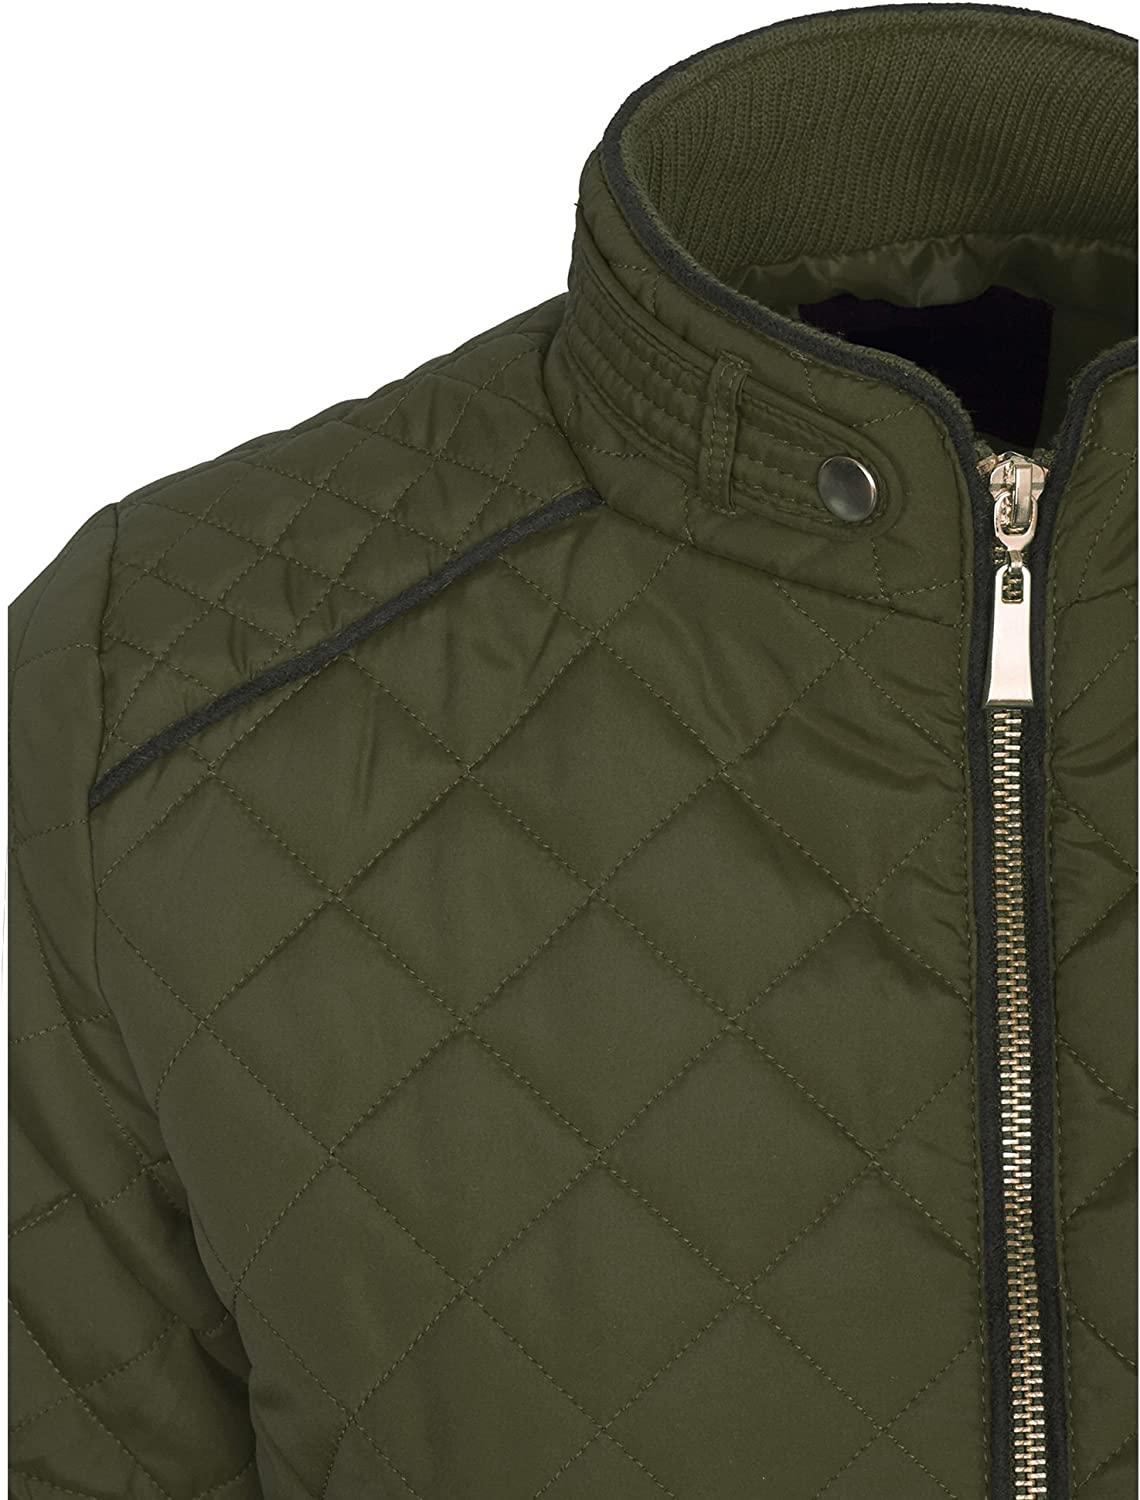 KOGMO Womens Quilted Fully Lined Lightweight Zip Up Jacket S-3X